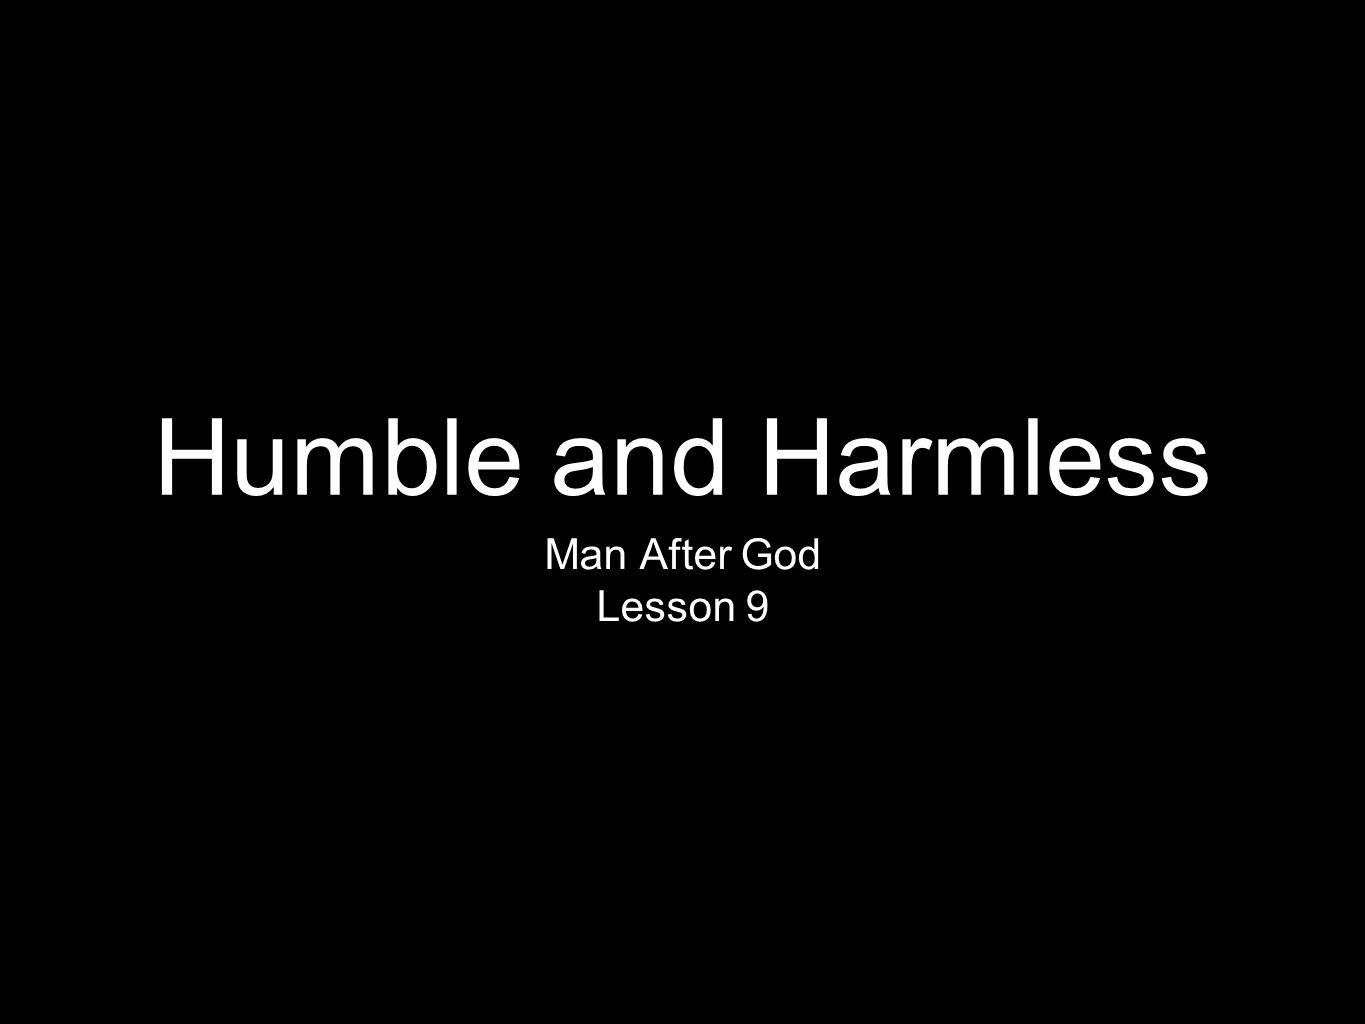 Humble and Harmless Man After God Lesson 9